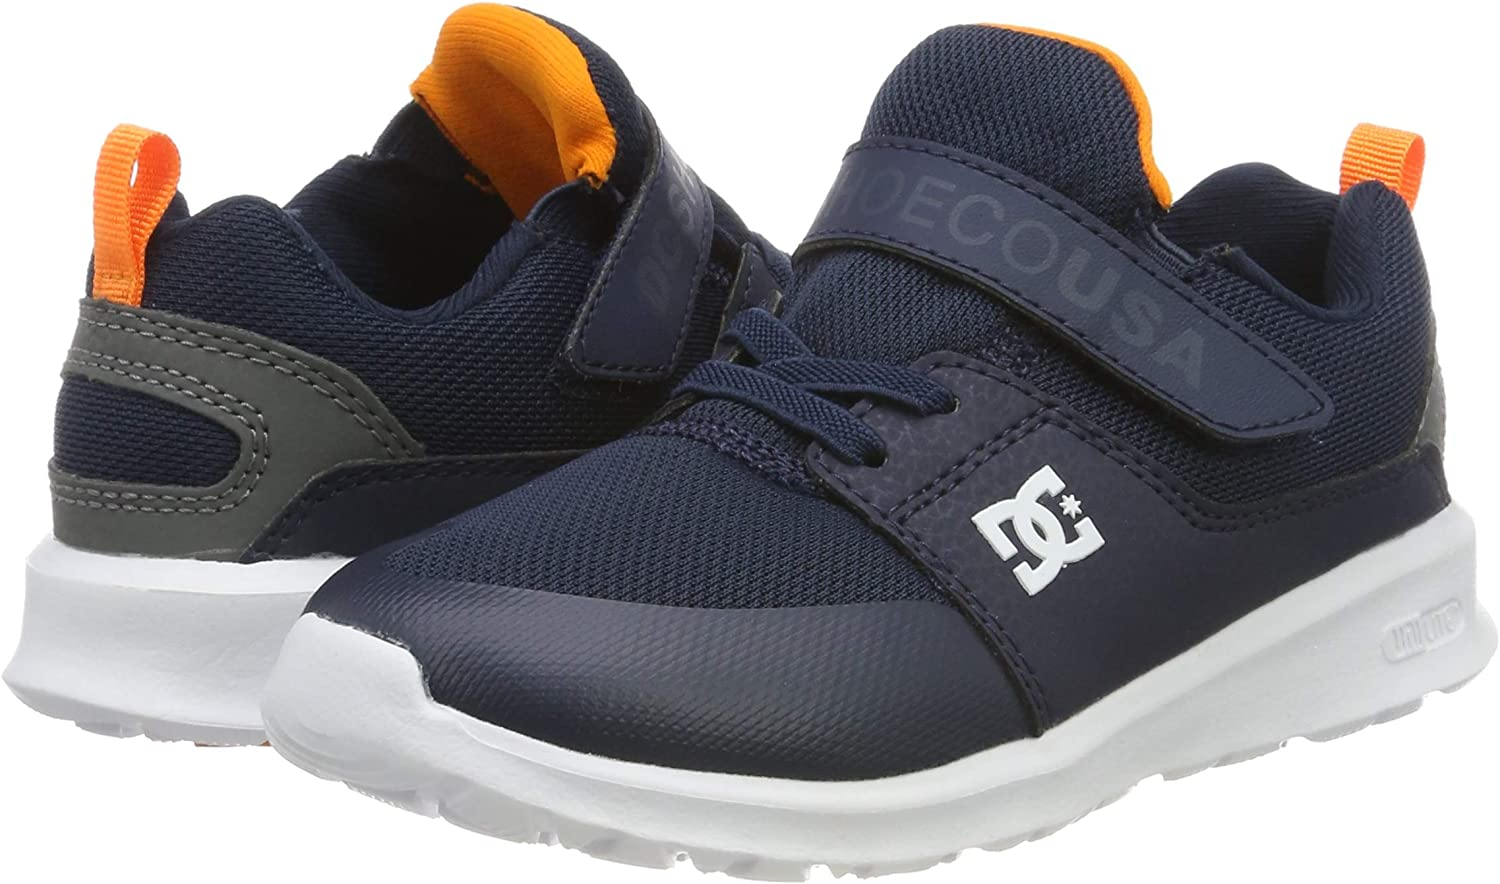 Scarpe da Skateboard Bambino Heathrow Prestige Ev DCSHI DC Shoes Shoes for Boys